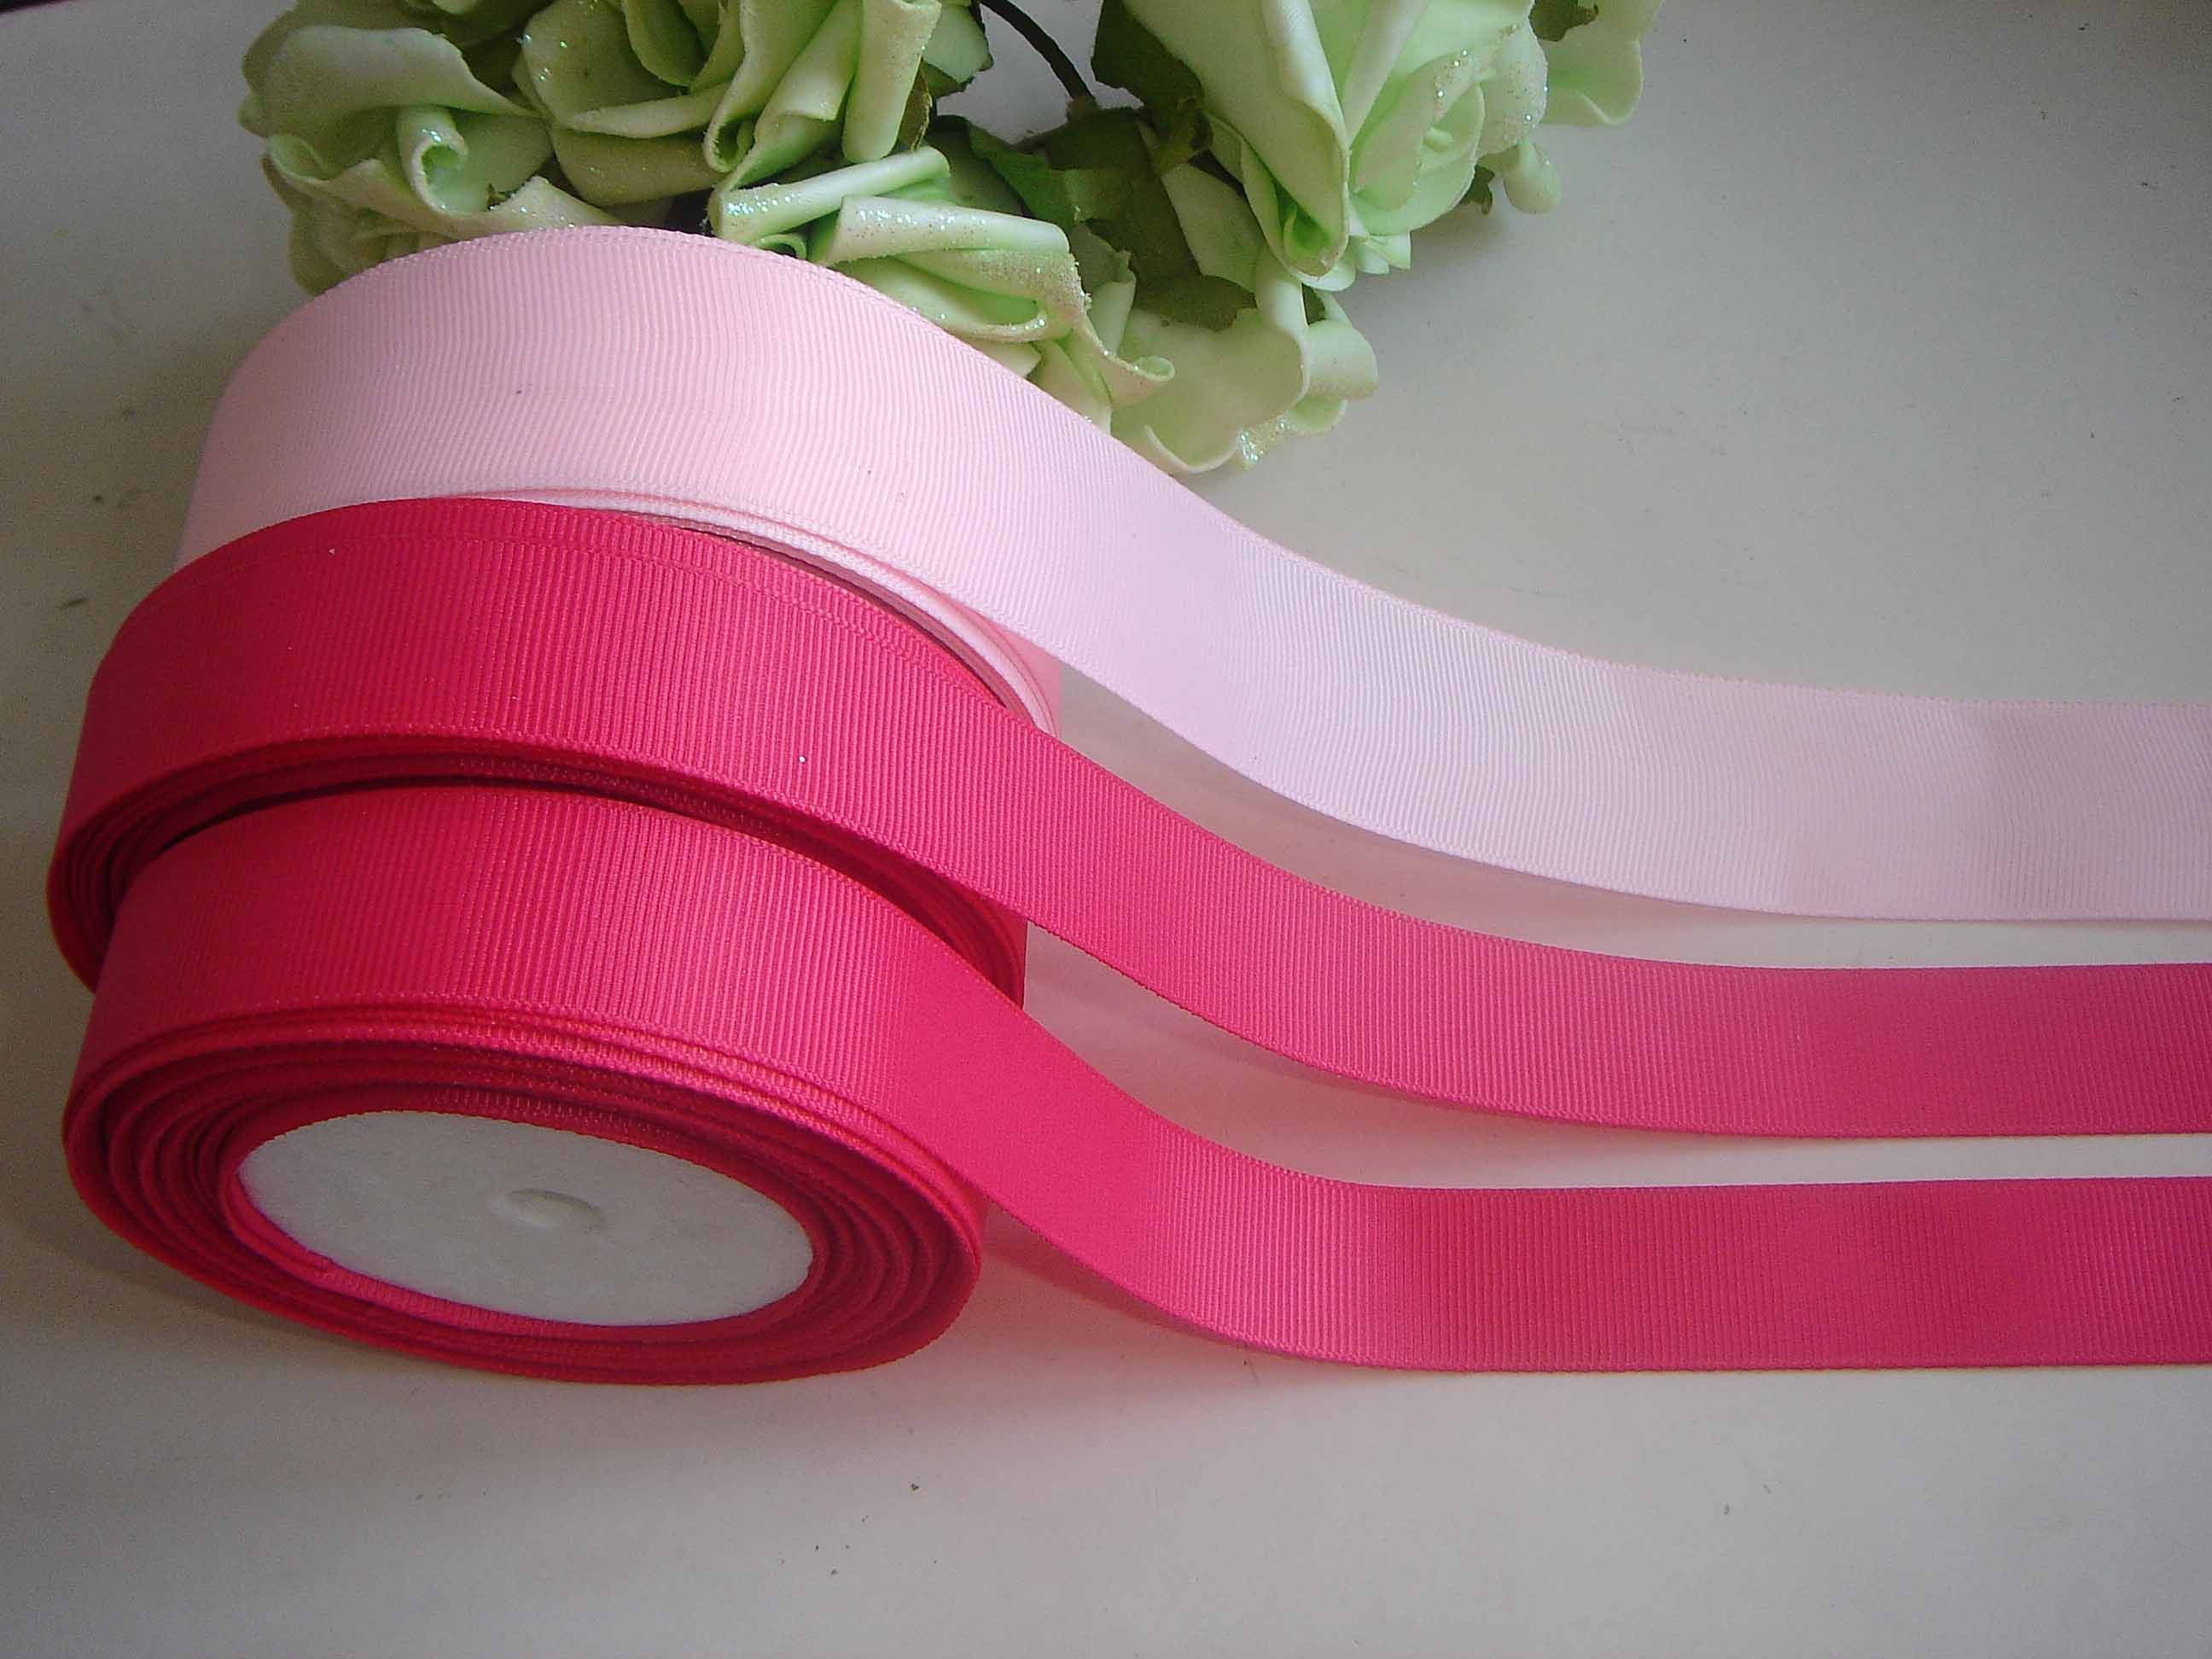 Decorative Valentine grosgrain ribbon